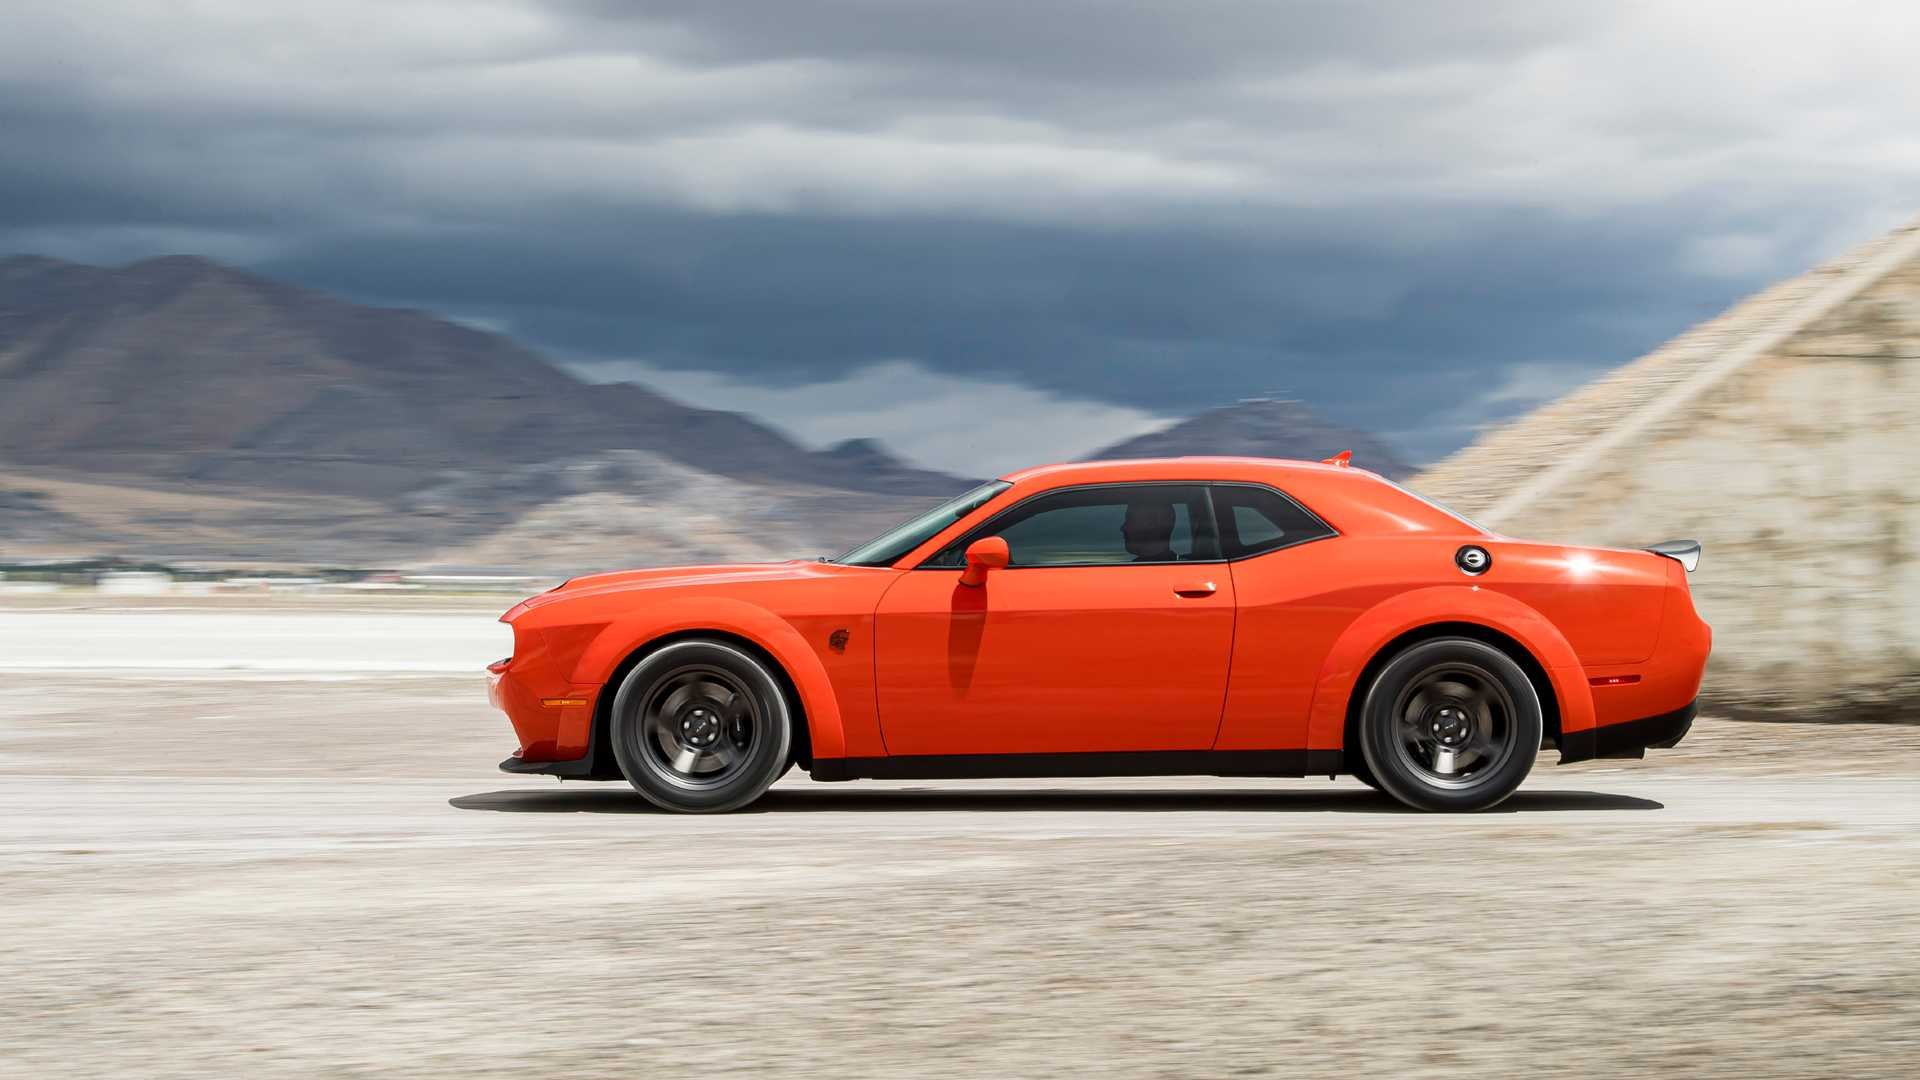 challenger dodge srt muscle demon redeye half hellcat superstock durango typical suv variants confirms charger three autoevolution drag speed racing